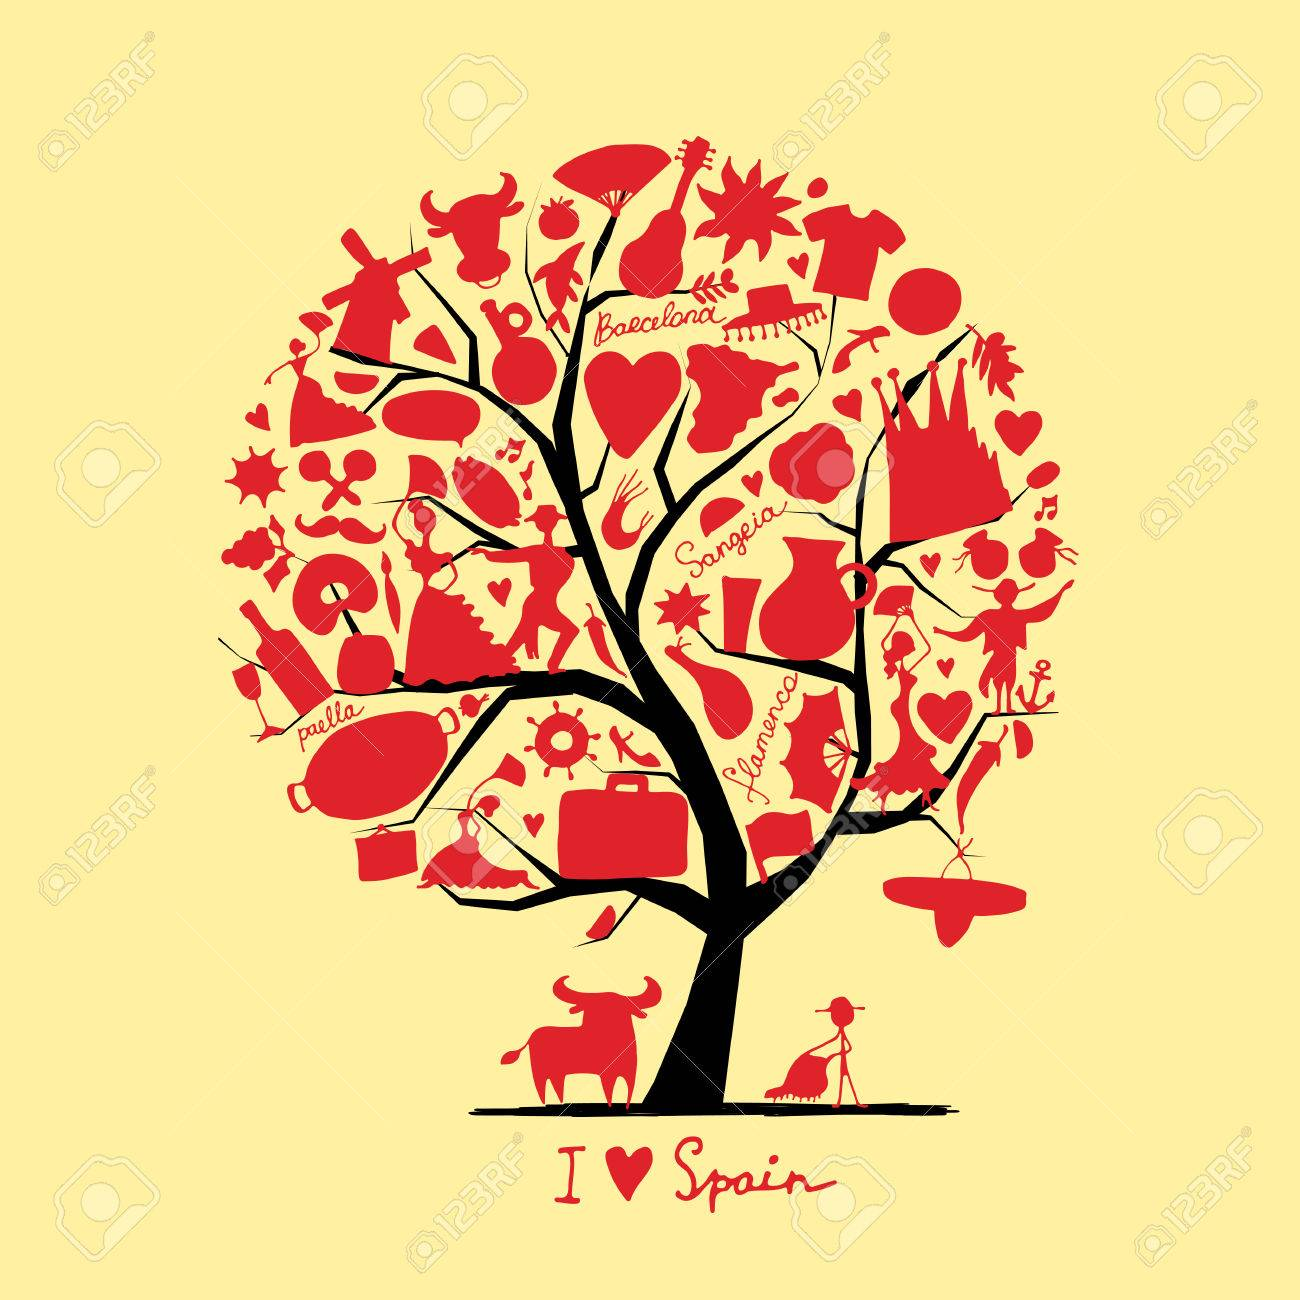 Art tree with spain symbols for your design royalty free cliparts art tree with spain symbols for your design stock vector 73937318 buycottarizona Images